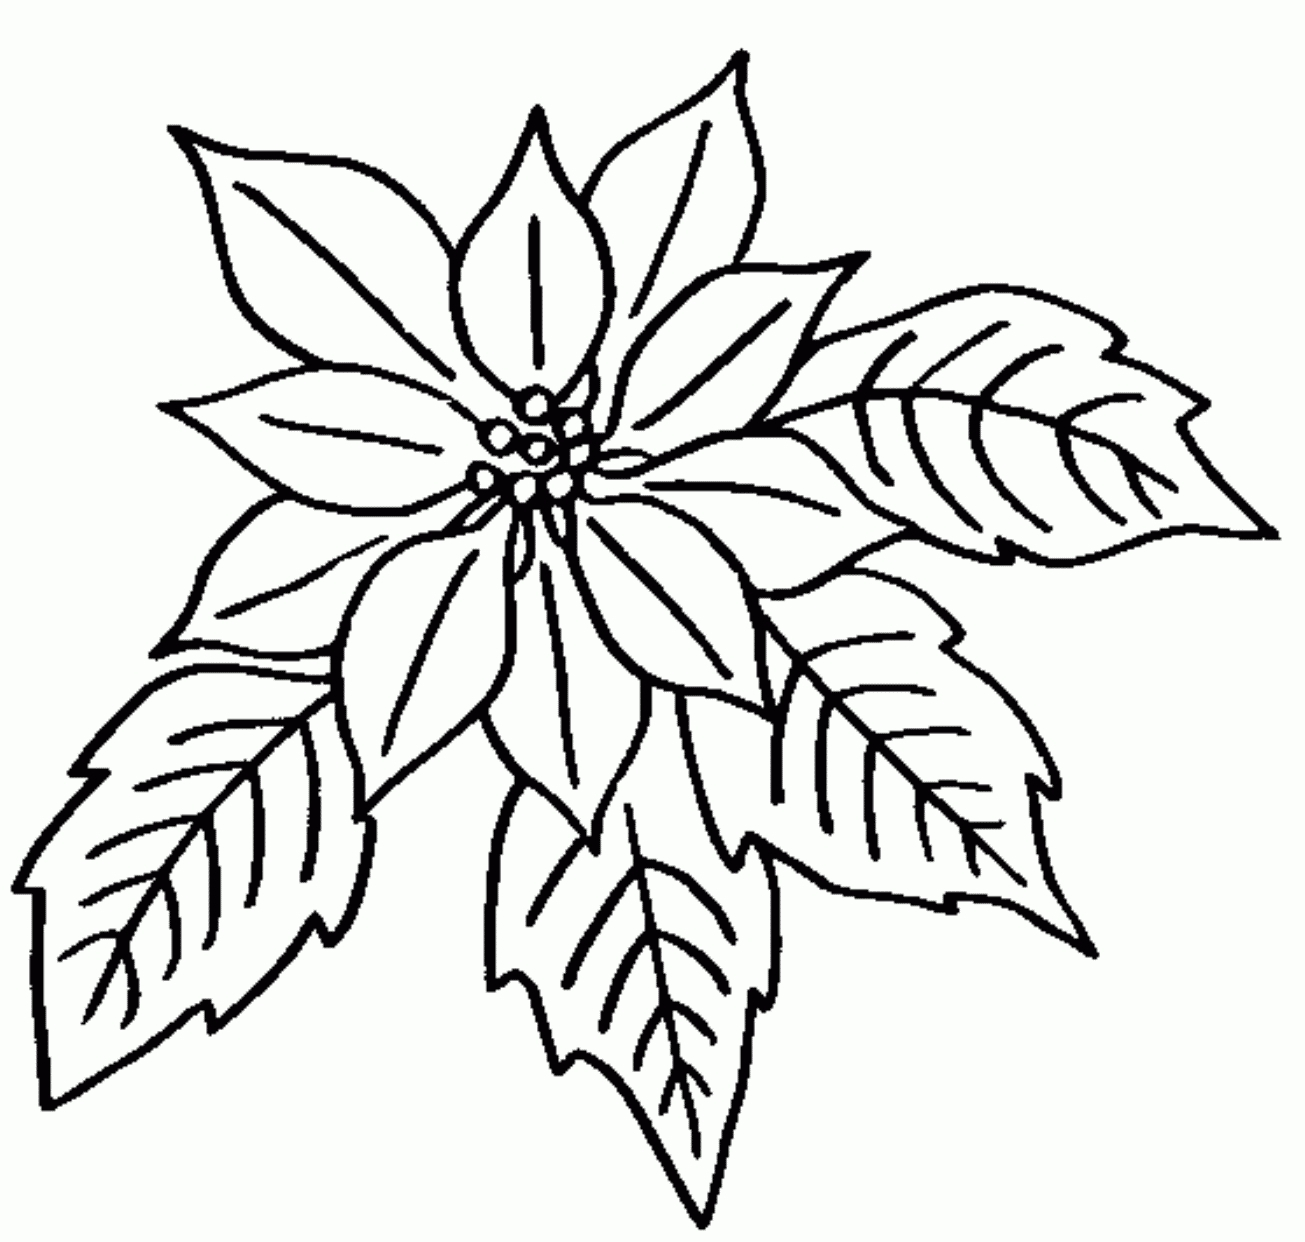 flower coloring pages for adults - coloringpagelibs